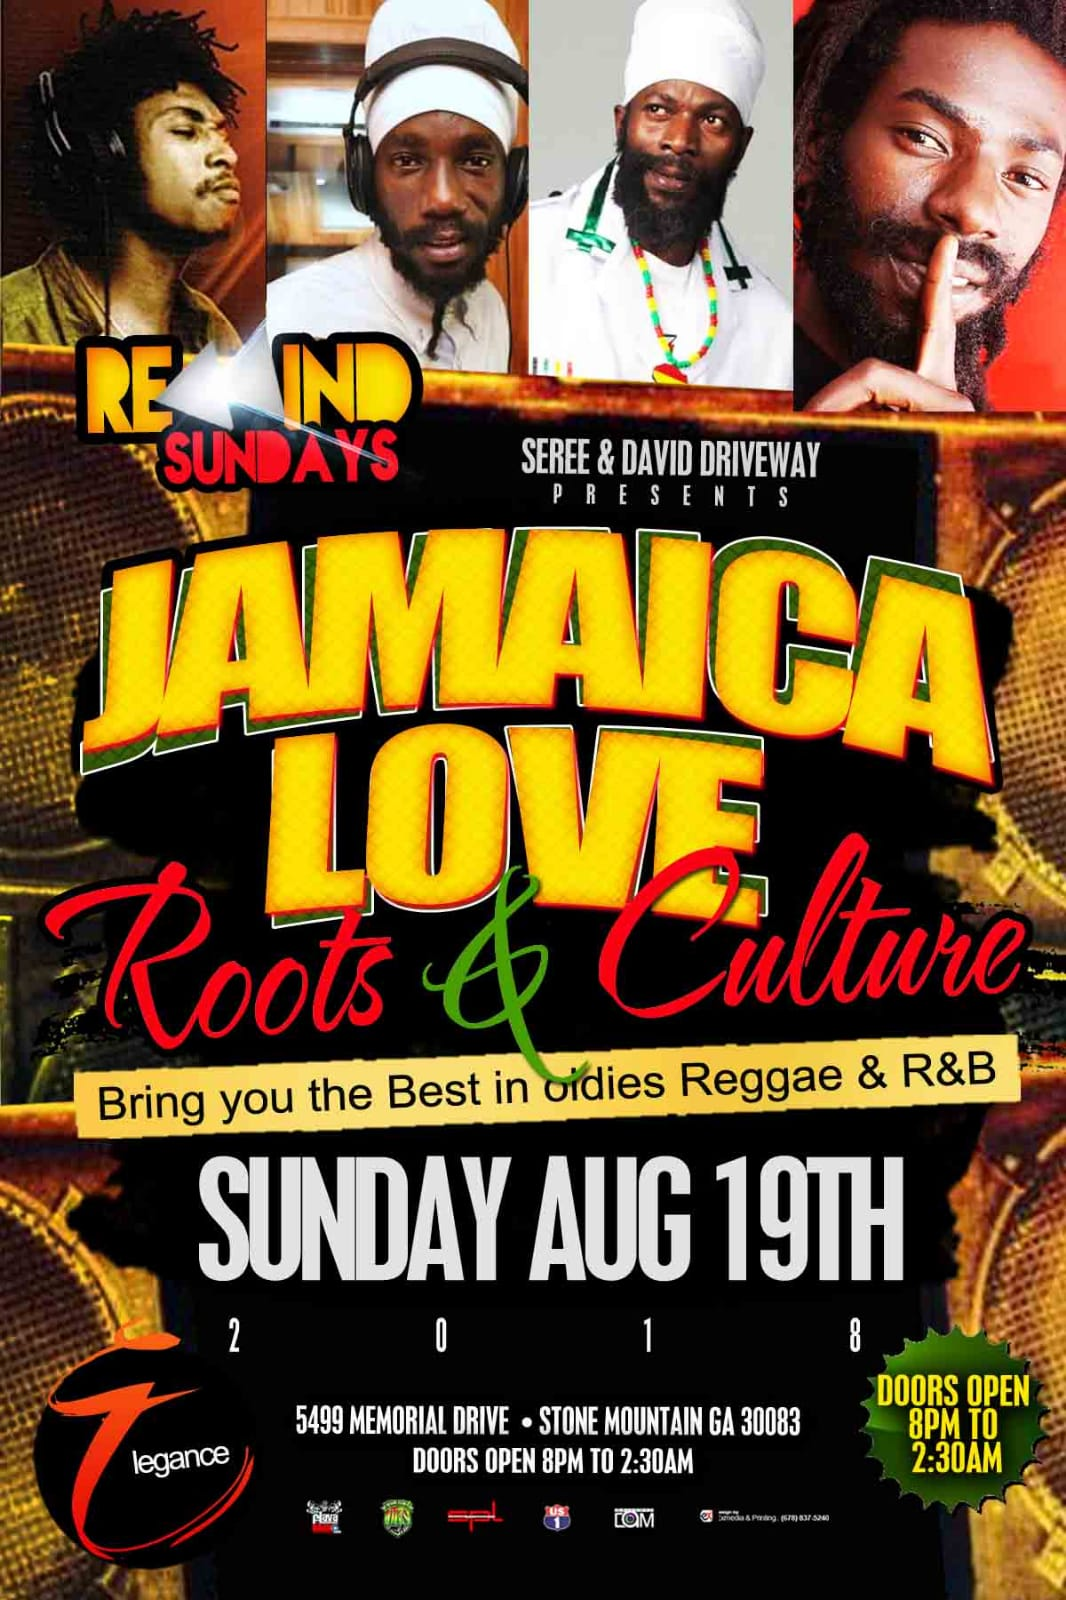 Go to #Eventbrite and get the complimentary tickets and special prices tickets and bottle packages #RewindSundays #JamaicaLove #RootsNCulture